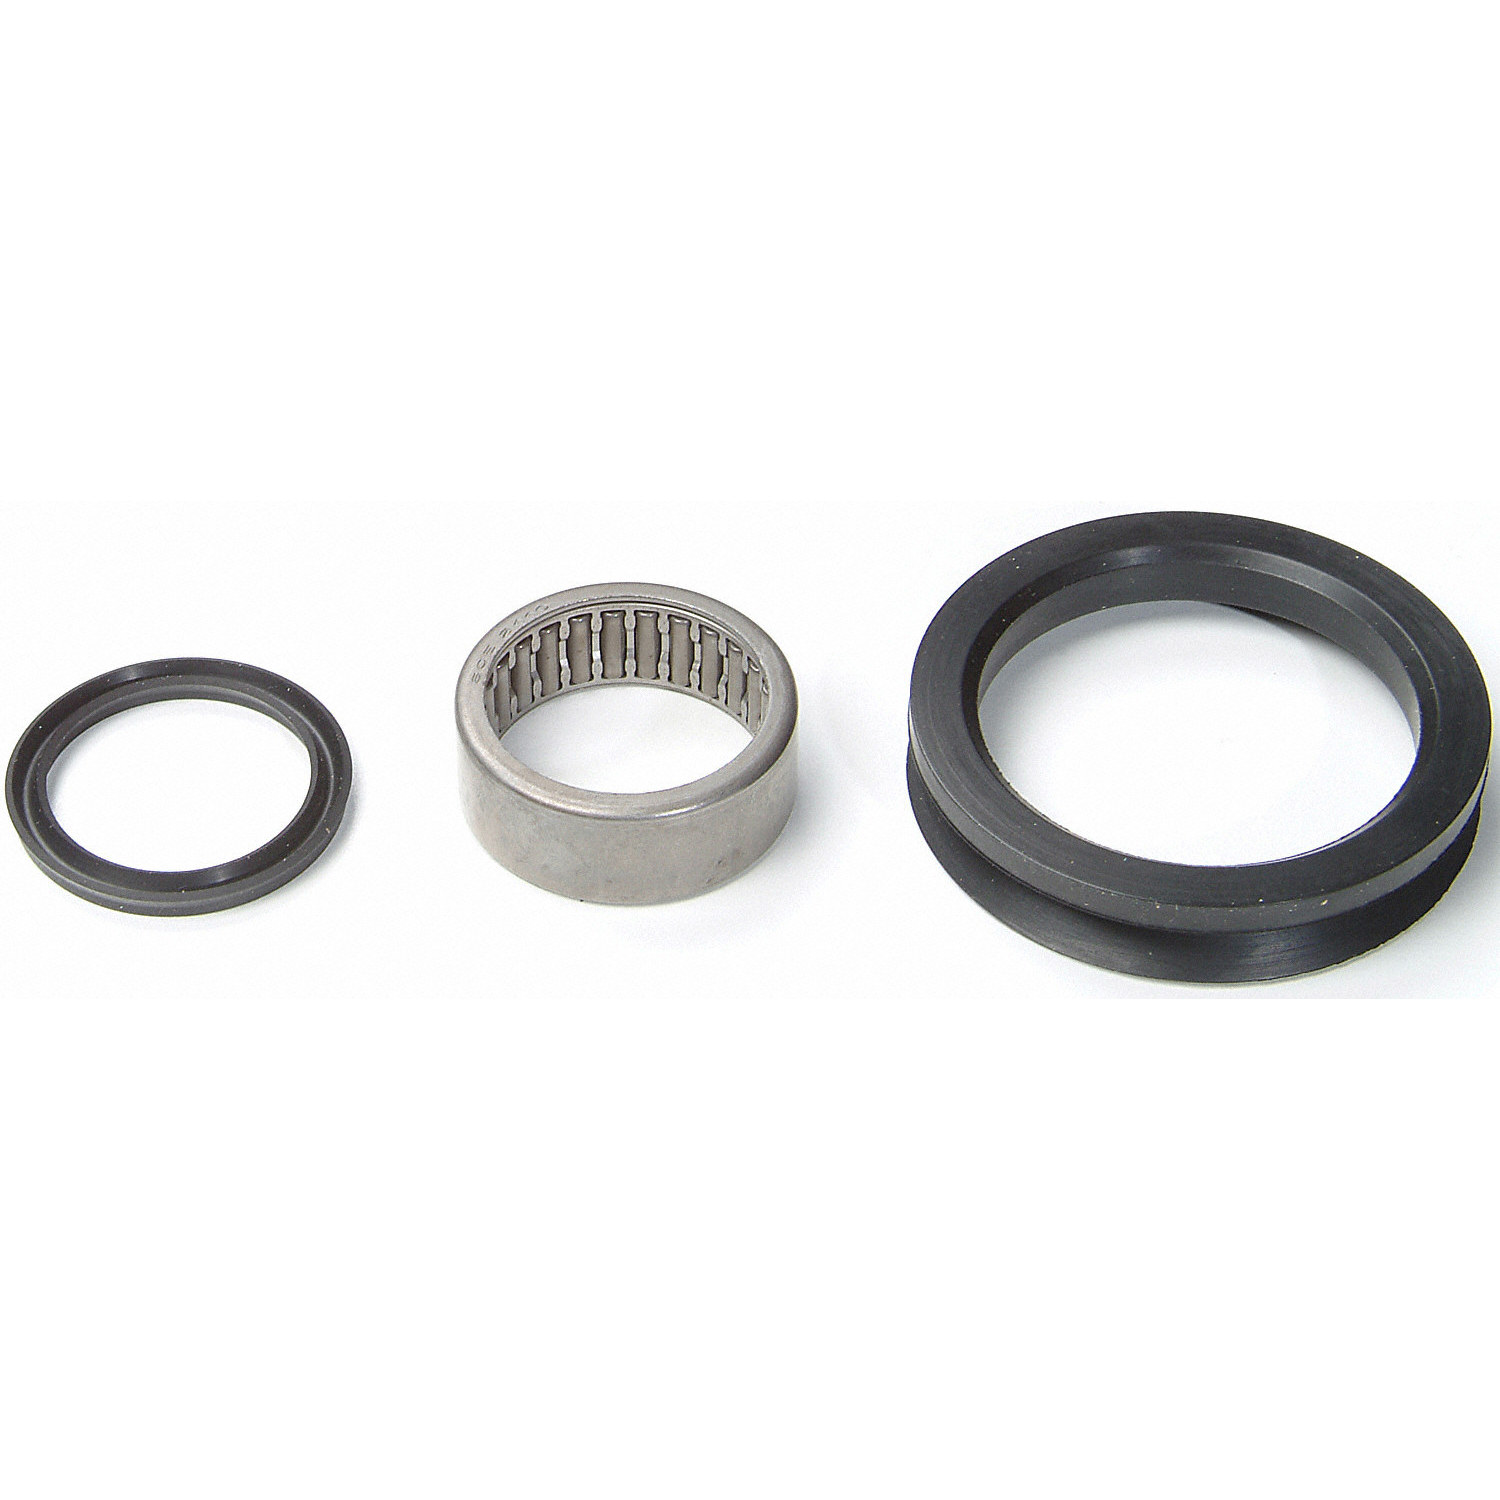 Axle Spindle Bearing